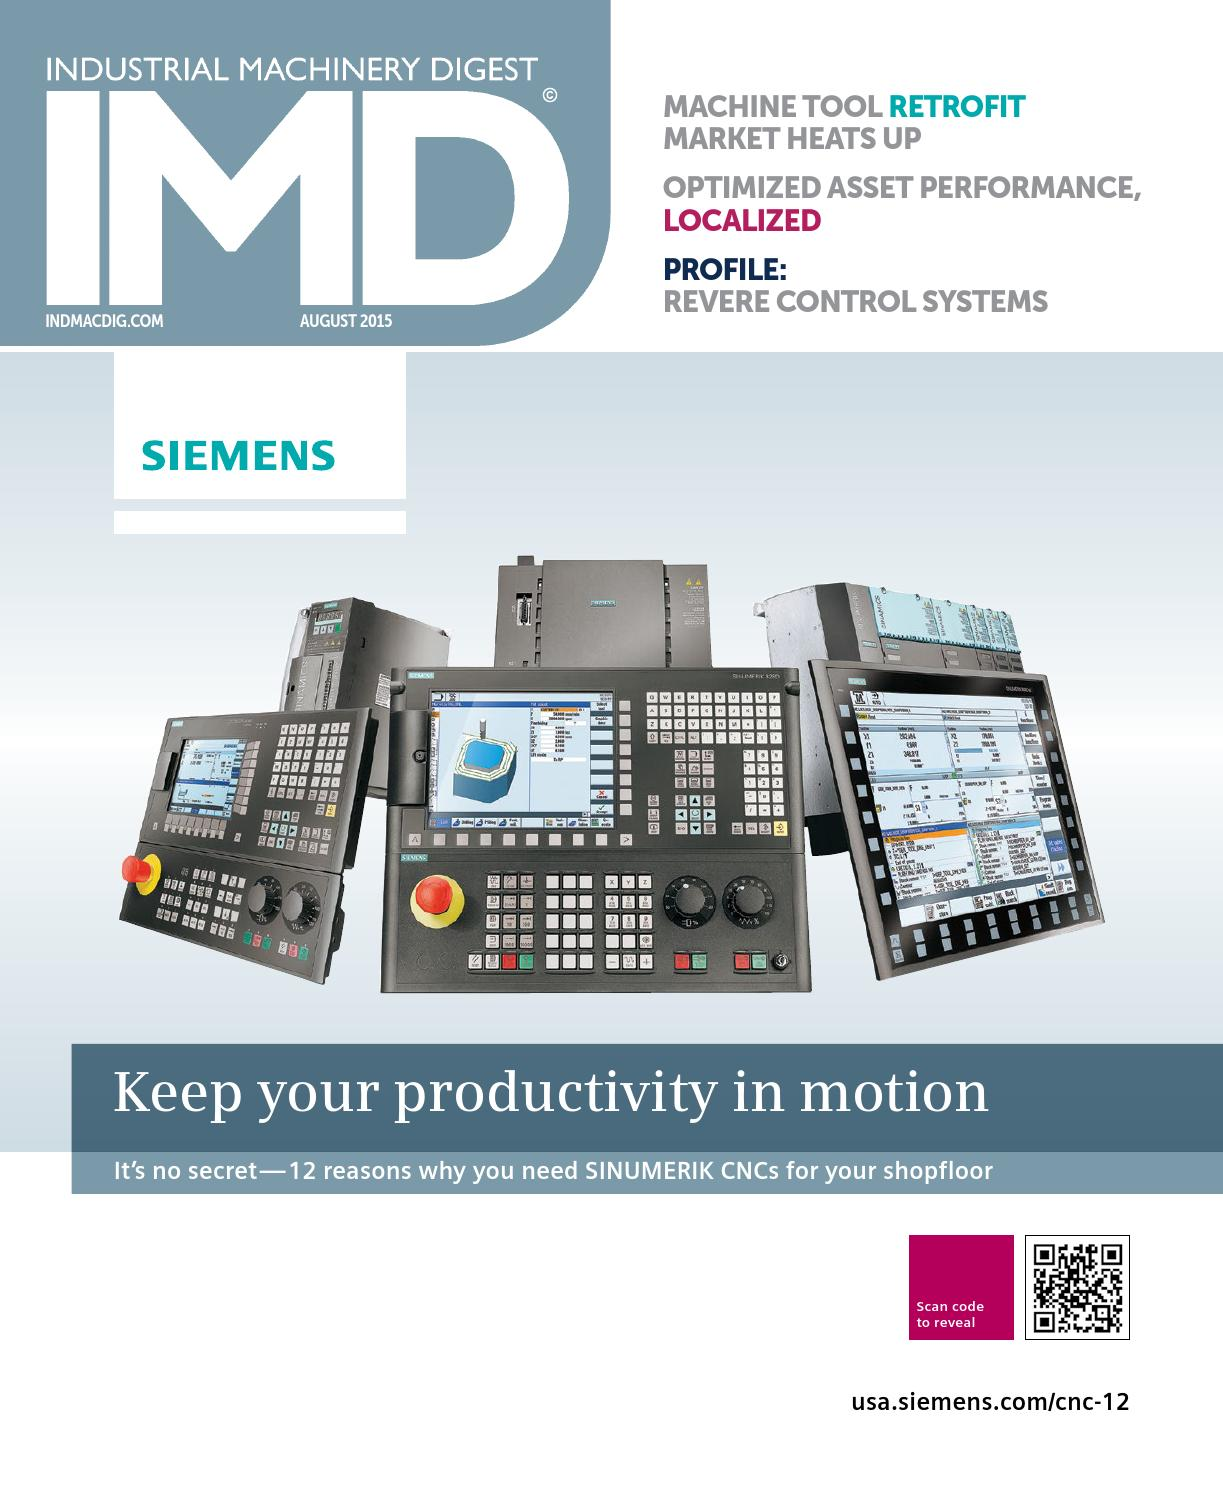 IMD August 2015 by Industrial Machinery Digest | IMD by Source 360